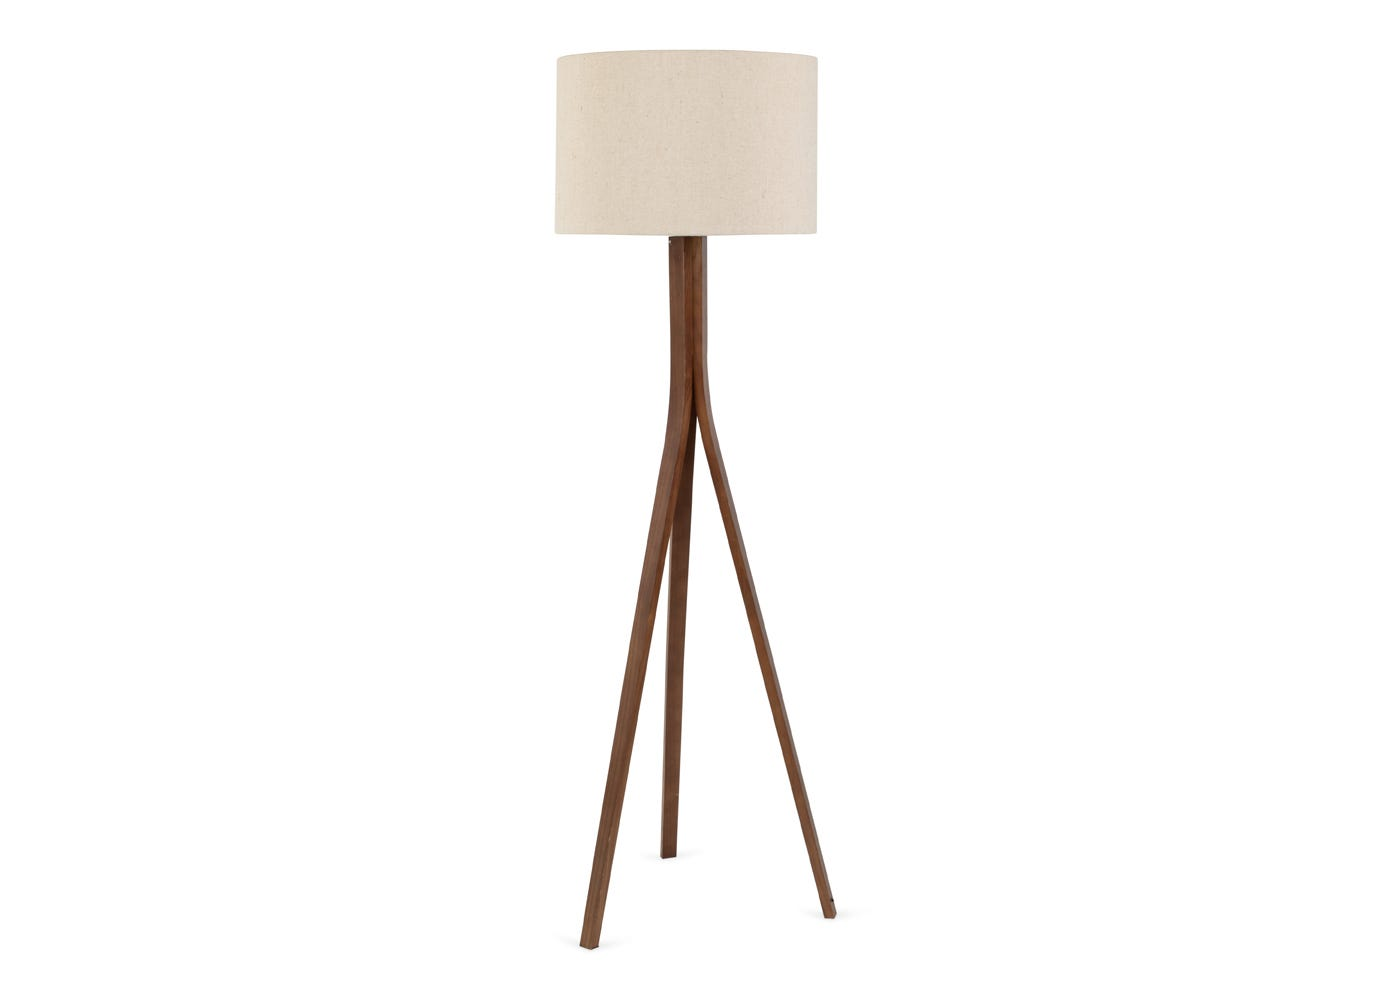 As shown: Baxter walnut floor Lamp with Shade.